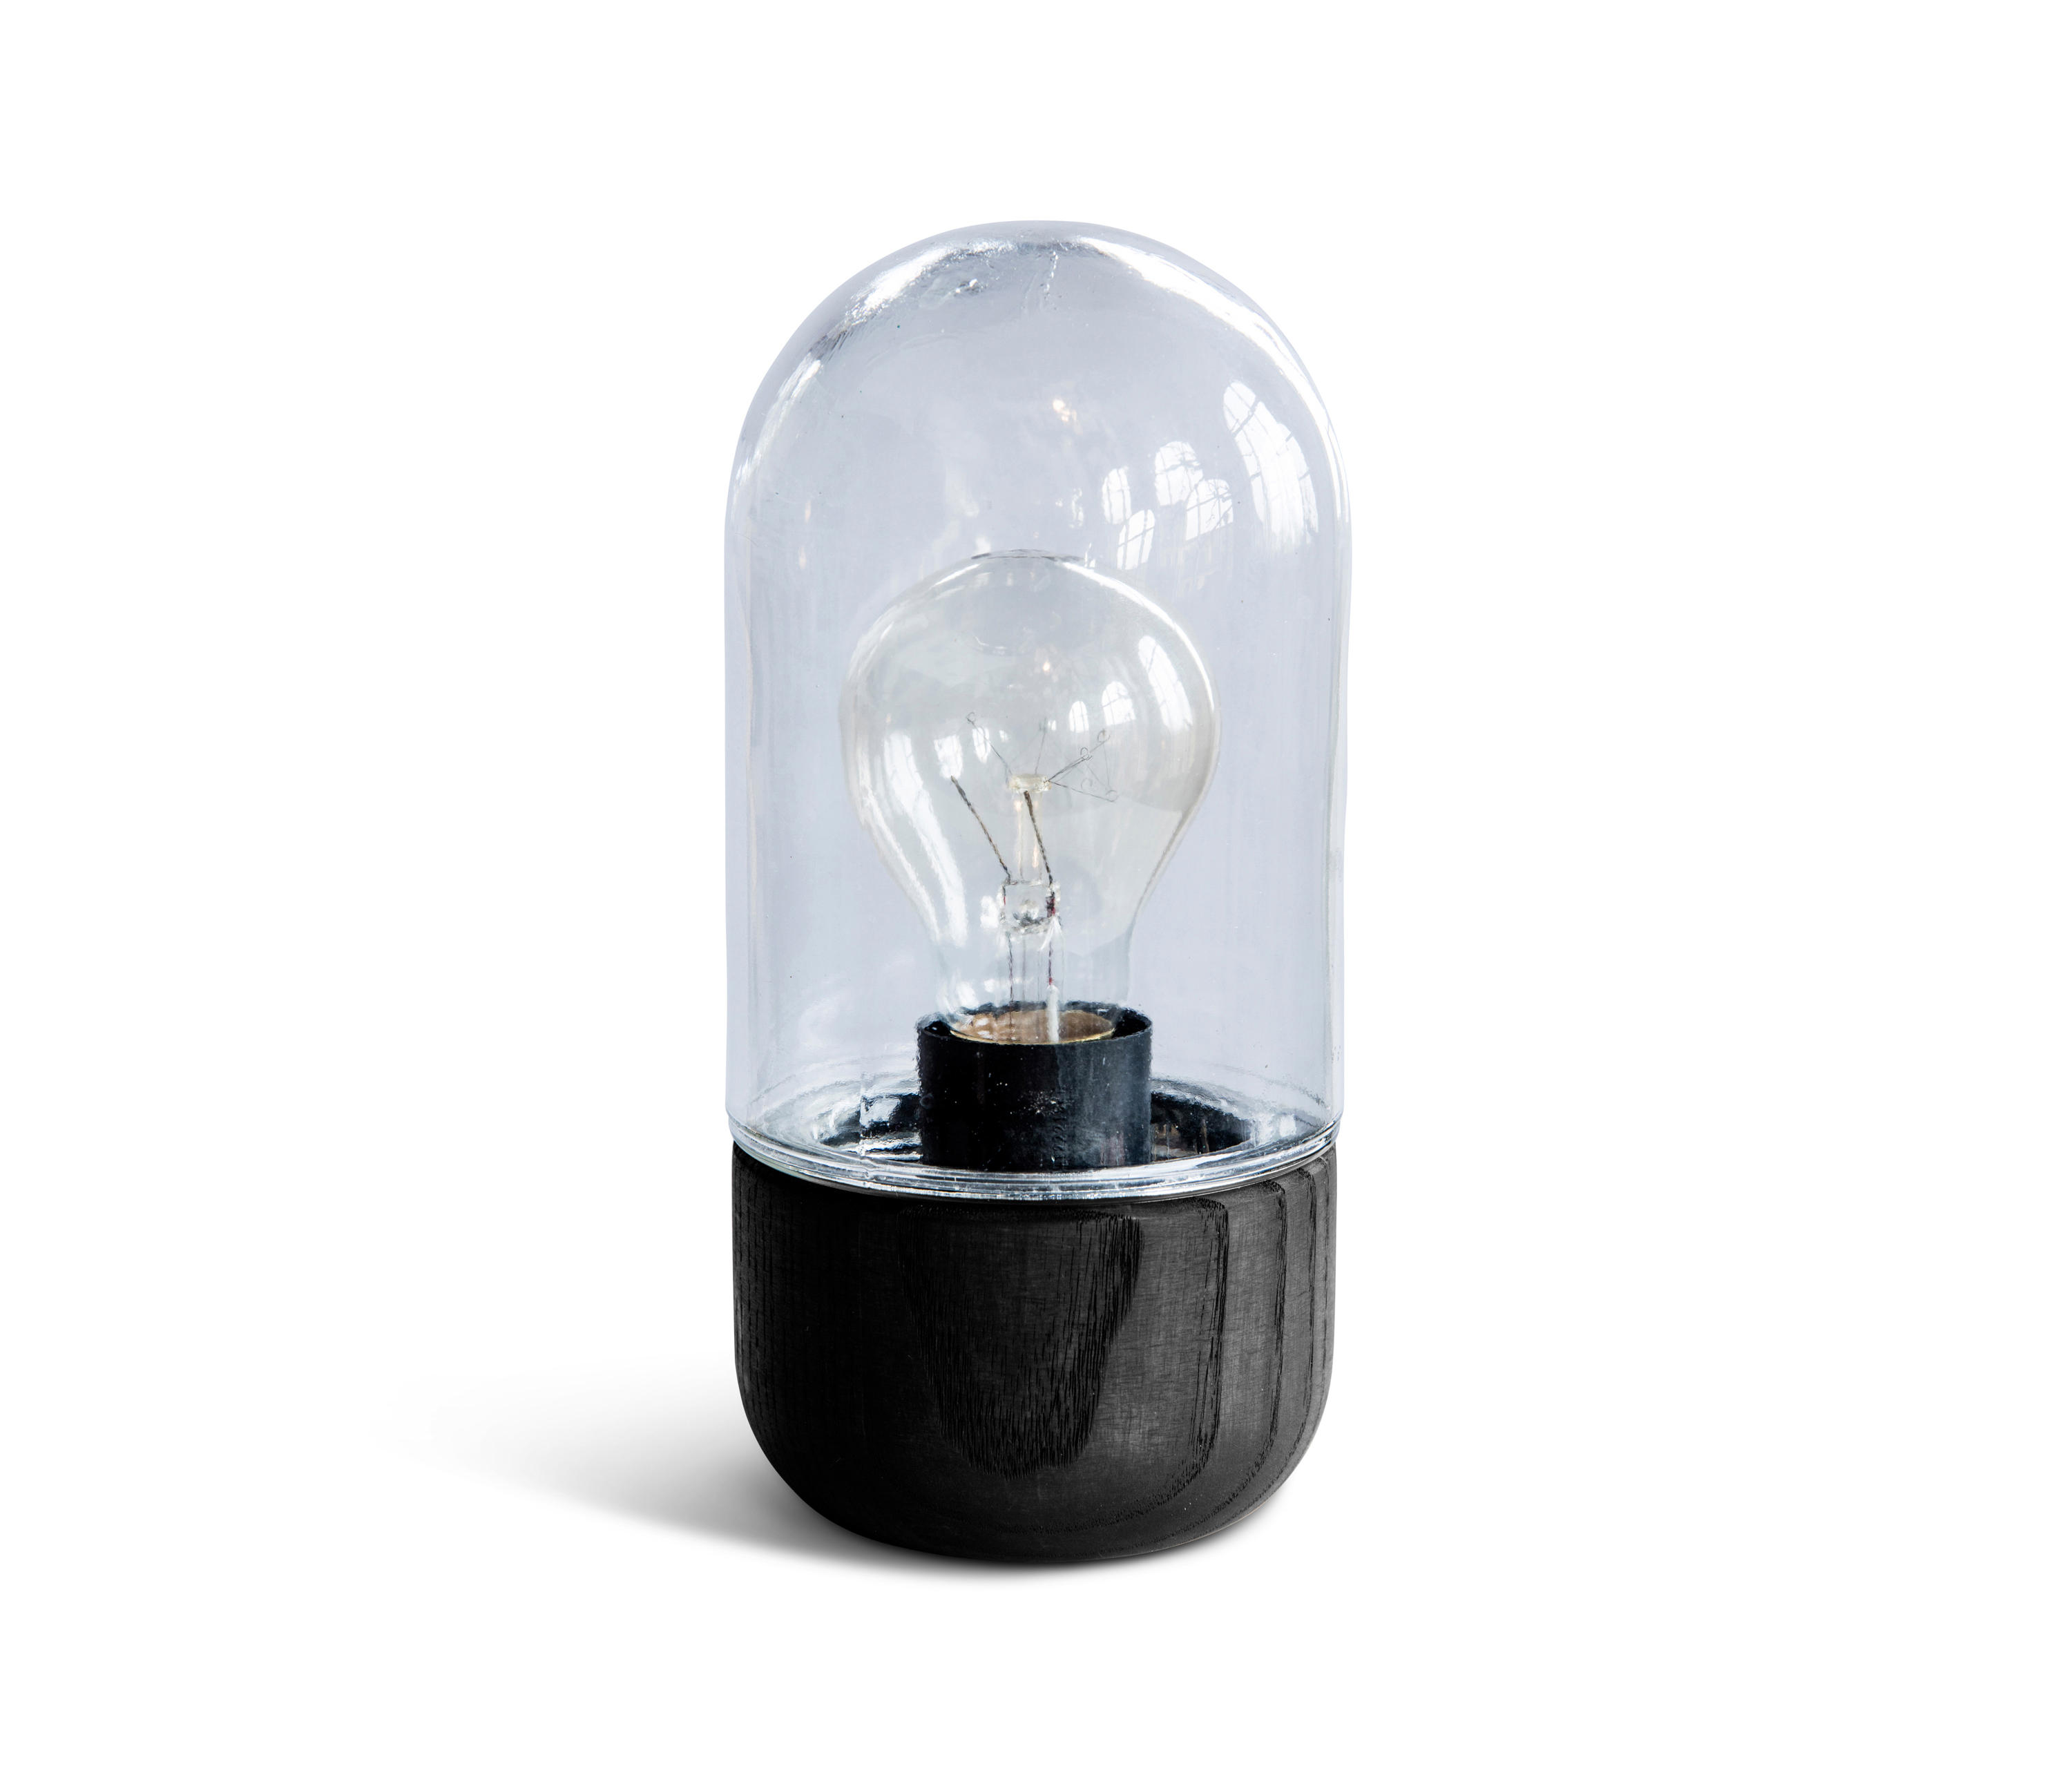 element lamp black general lighting from bent hansen architonic